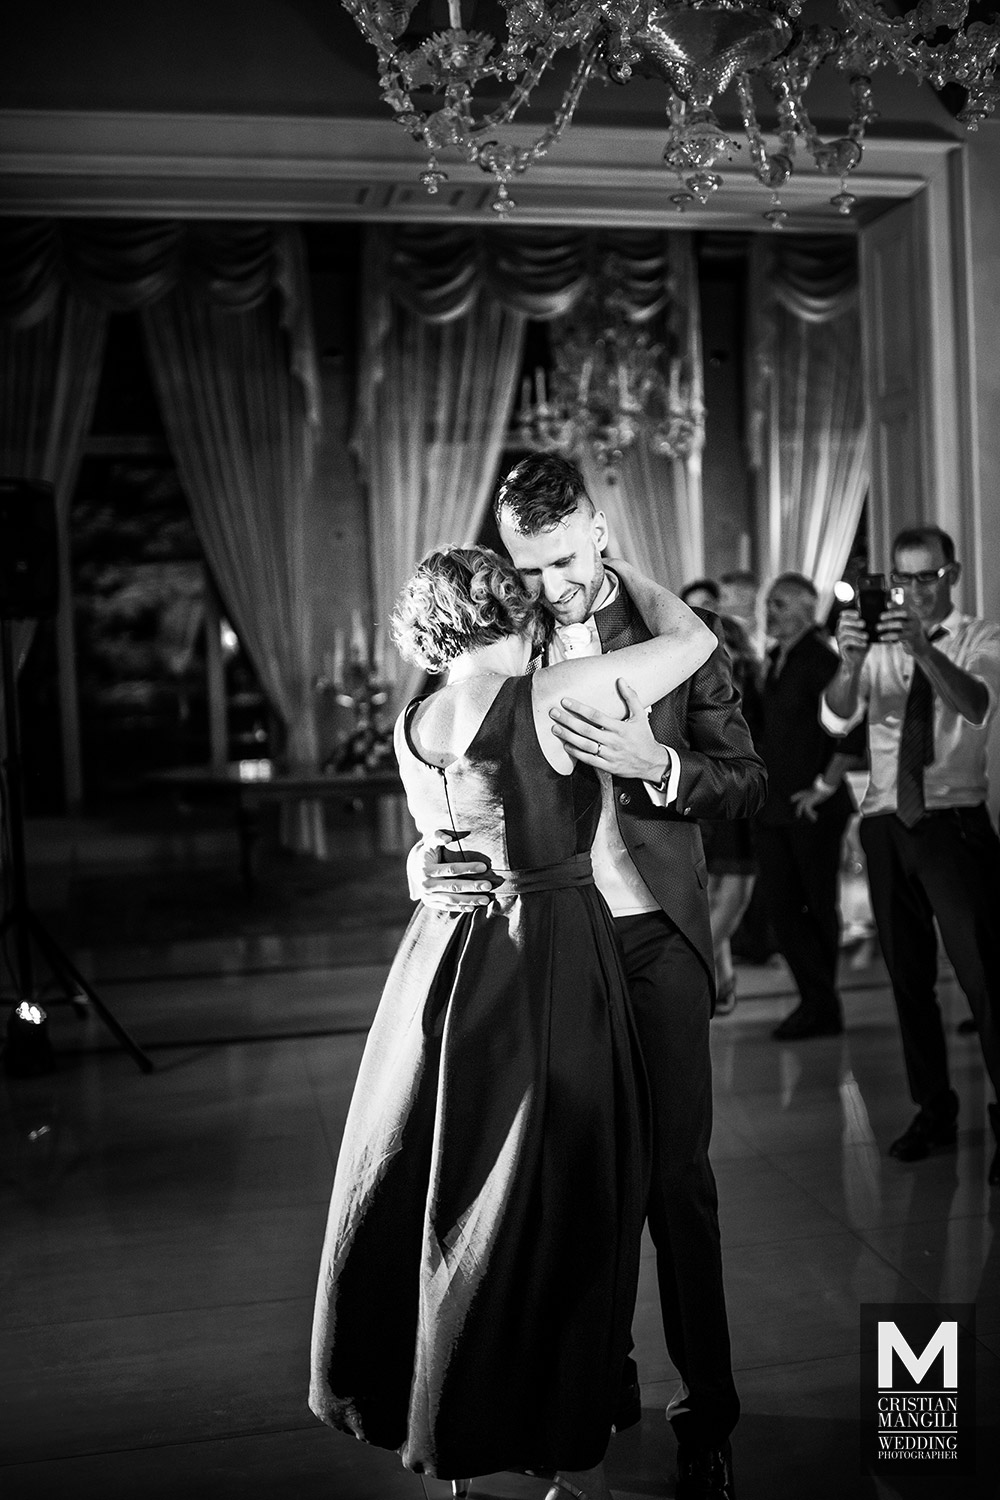 italian-wedding-photography-groom-mother-dancing-villa-mattioli